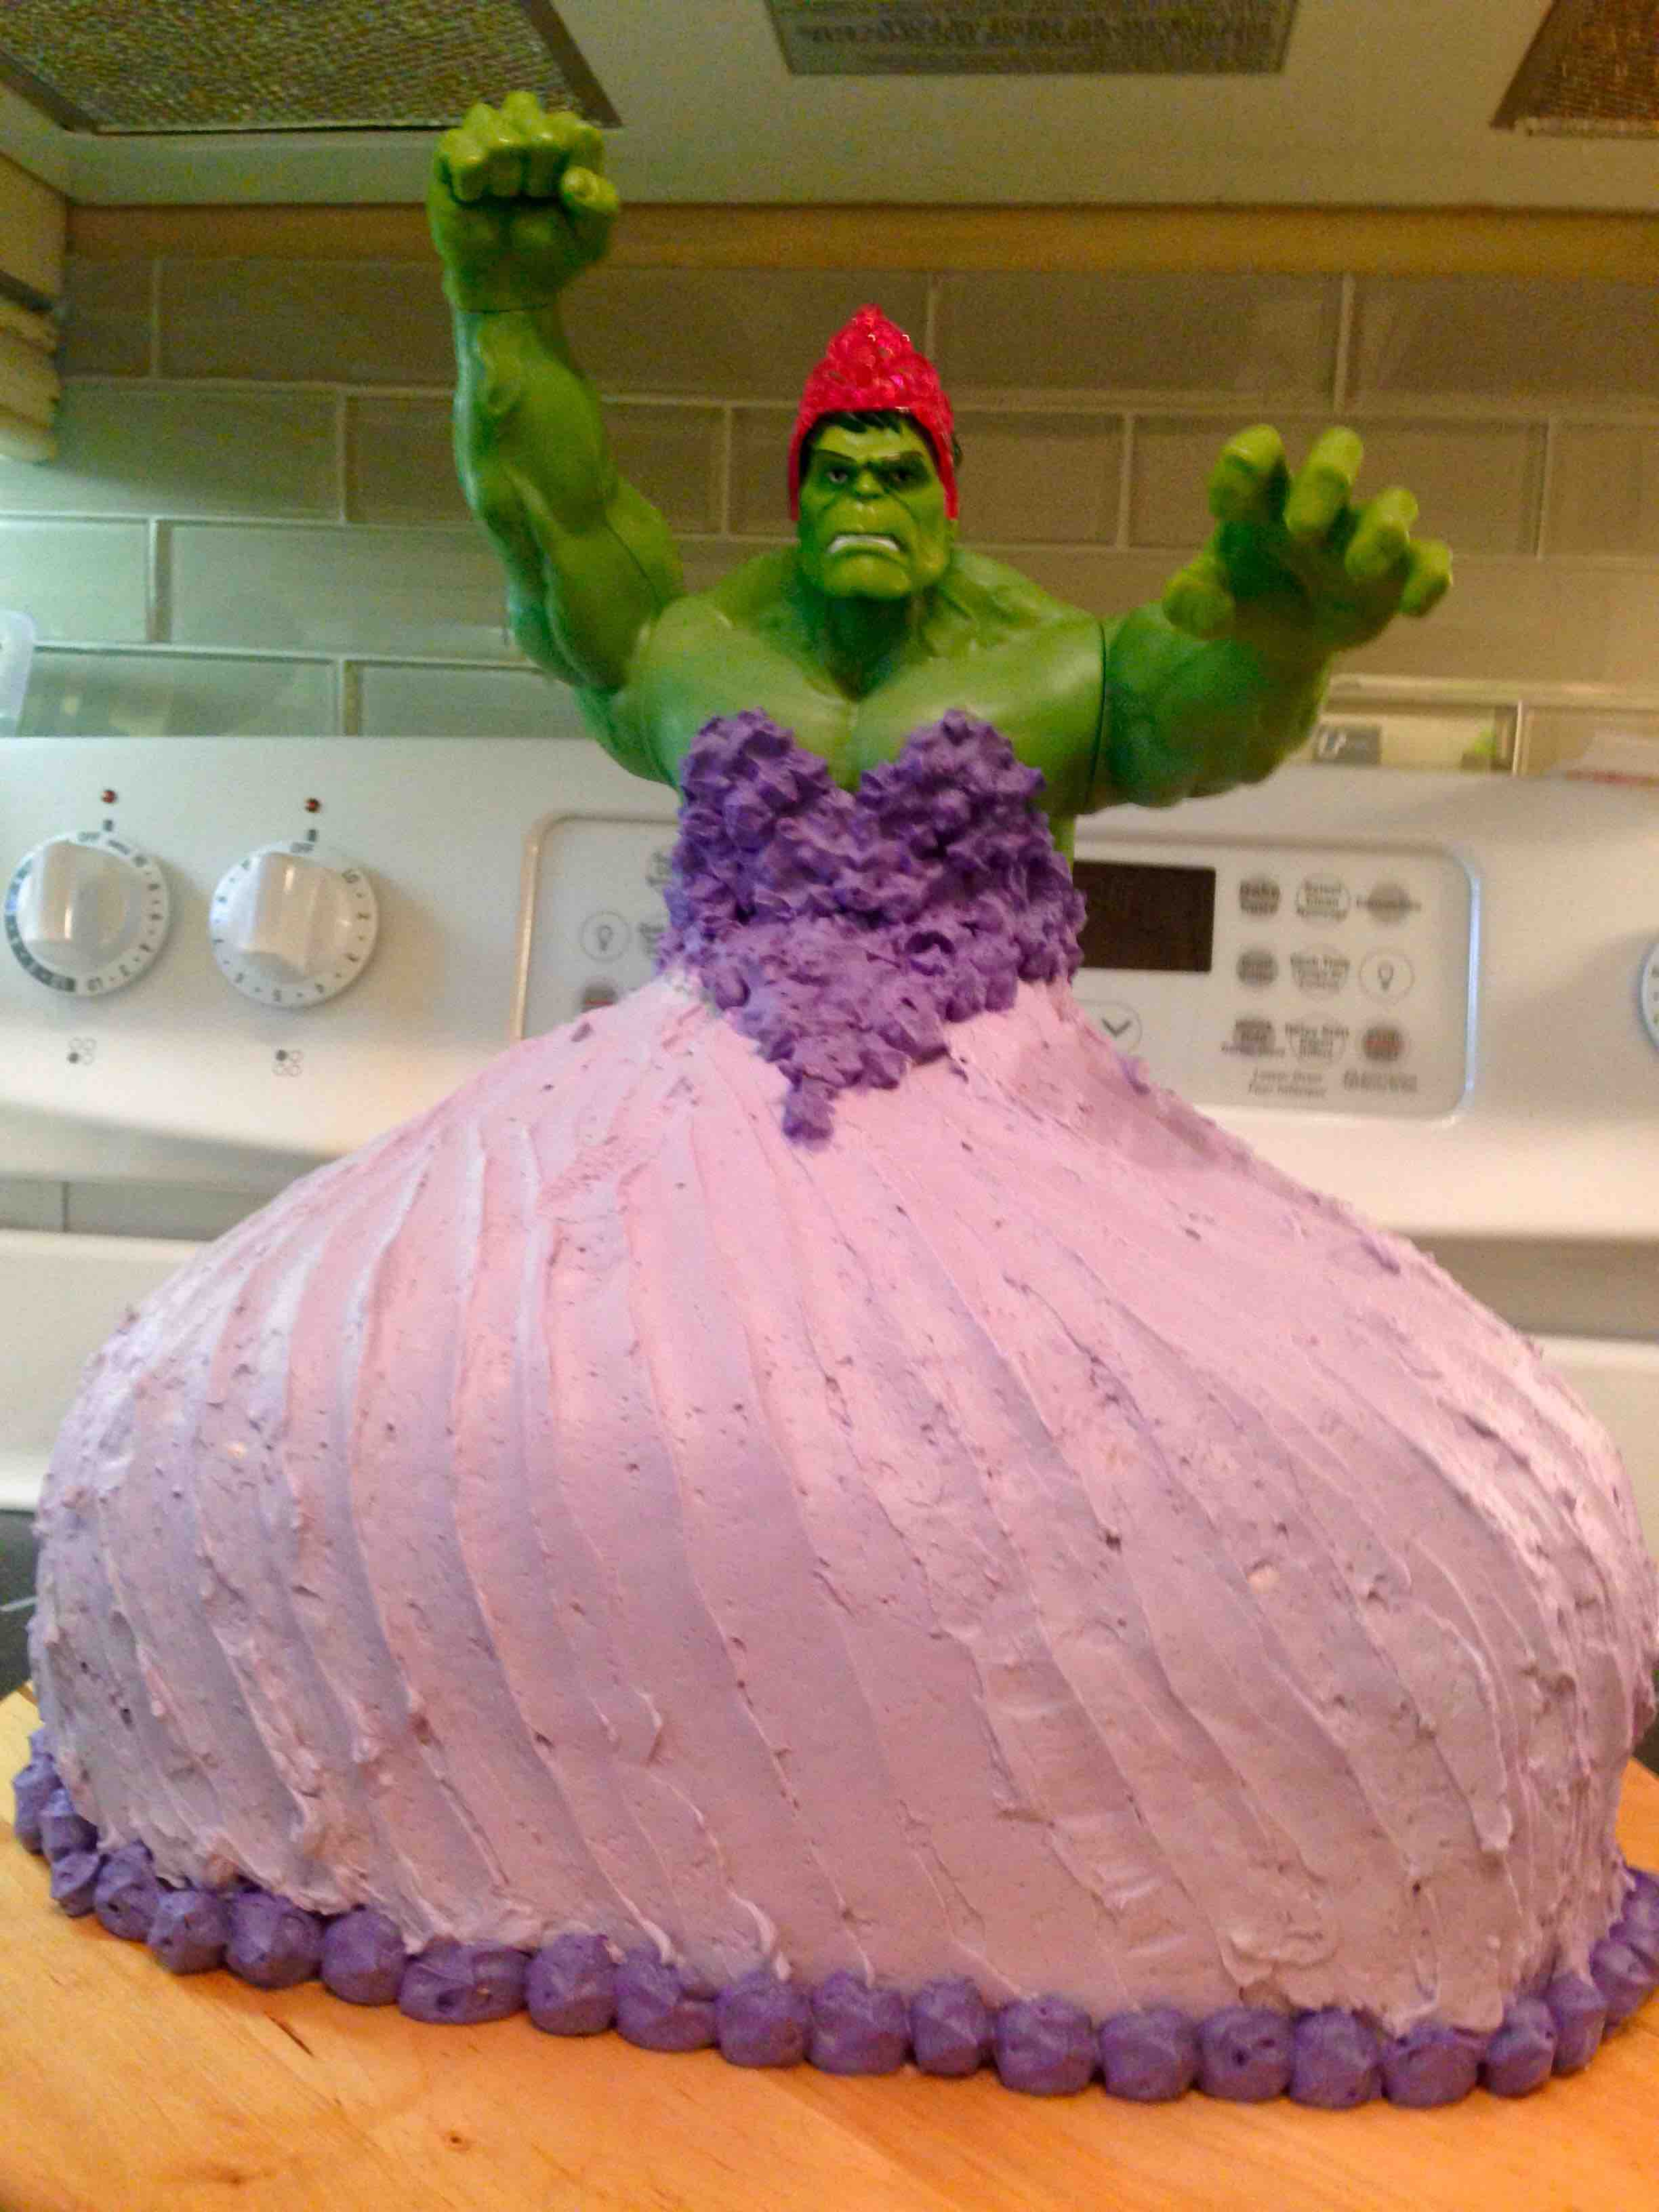 Fine Twin 4 Year Old Girls Ask For A Hulk Princess Birthday Cake Get Personalised Birthday Cards Veneteletsinfo